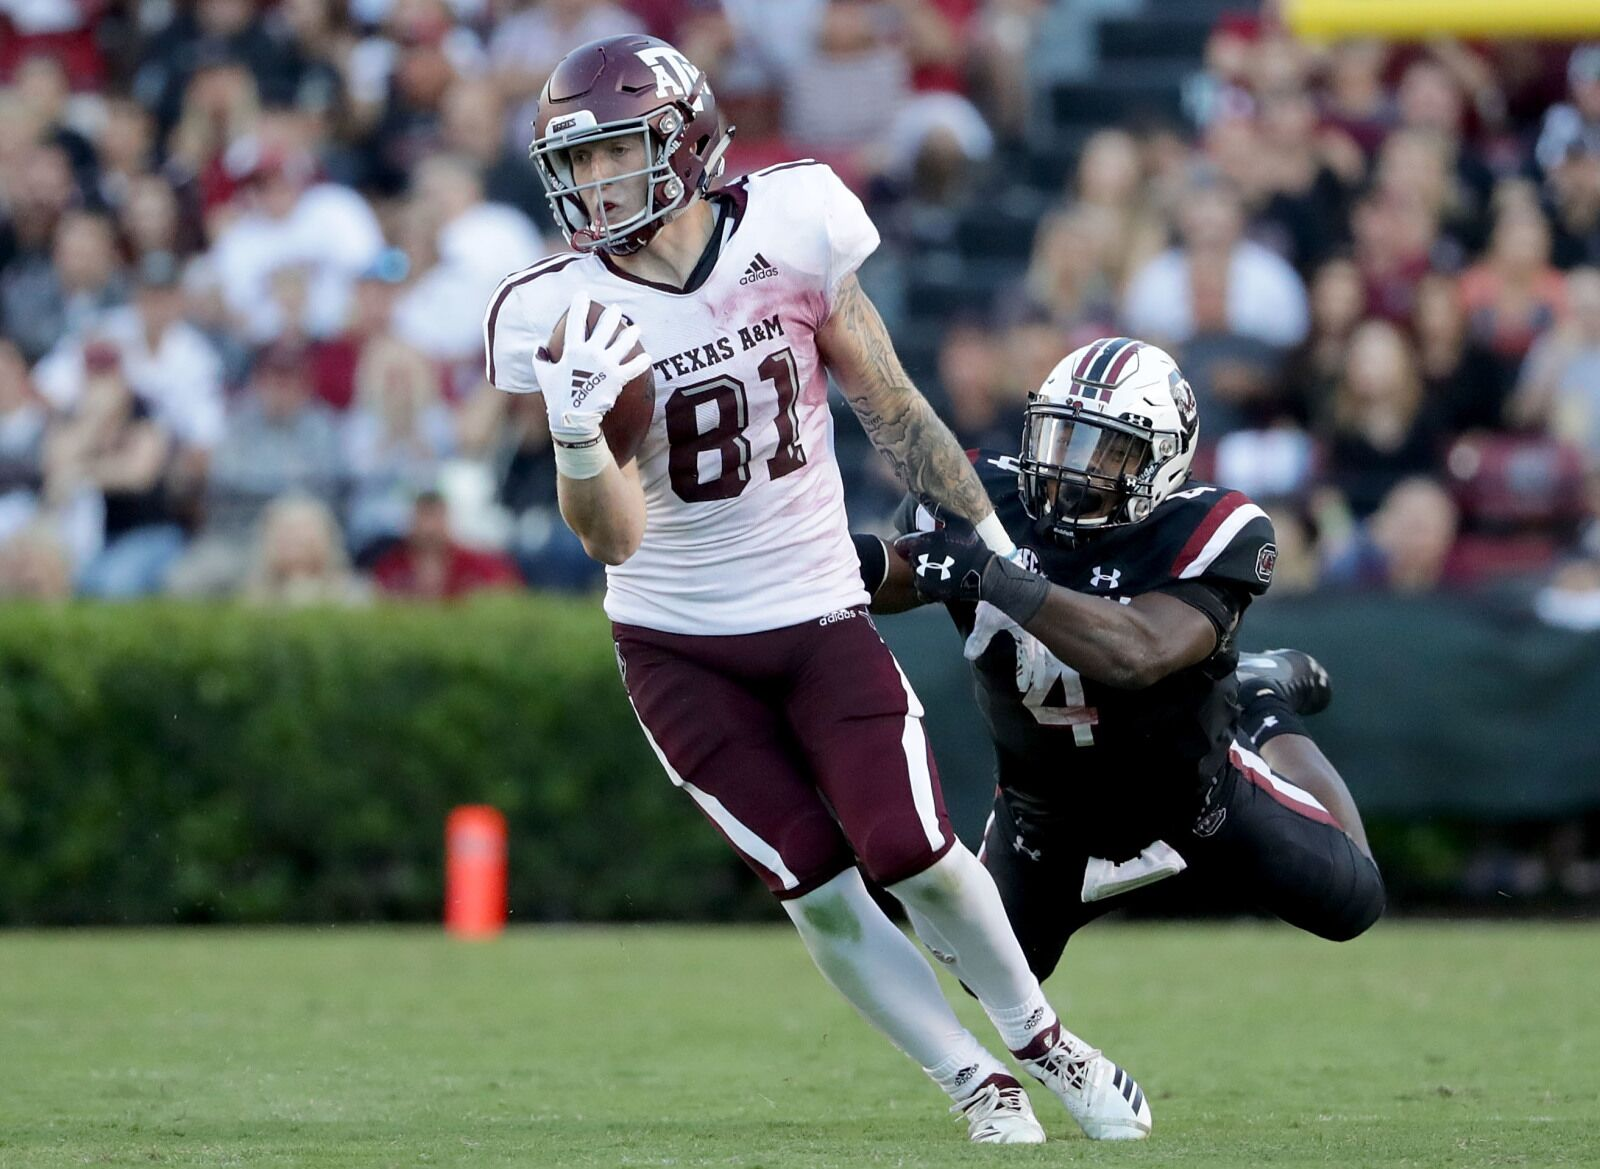 Packers TE Jace Sternberger will be a popular fantasy football pick